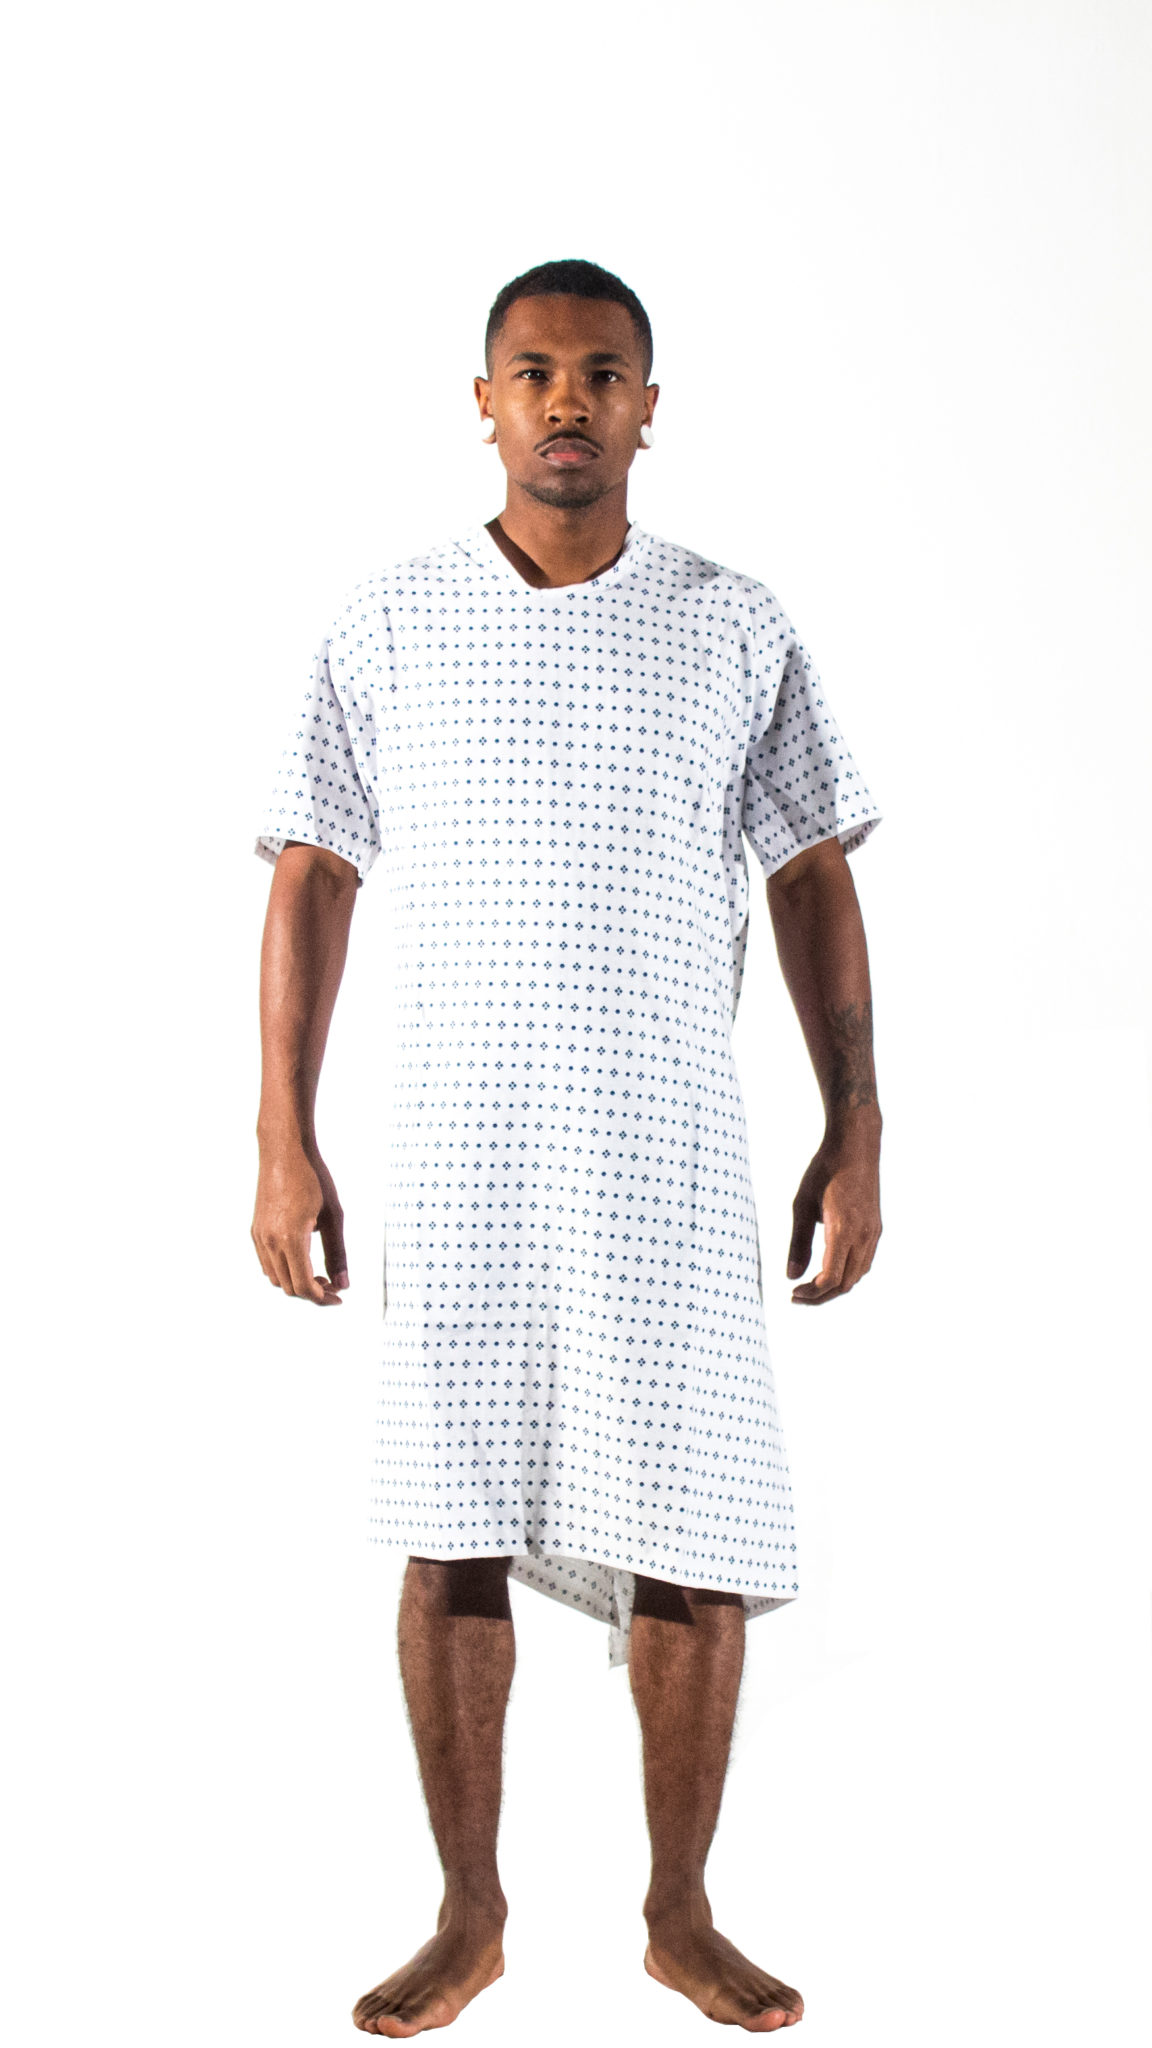 Hospital Patient Costumes Rental In Los Angeles - Thrifty Rents